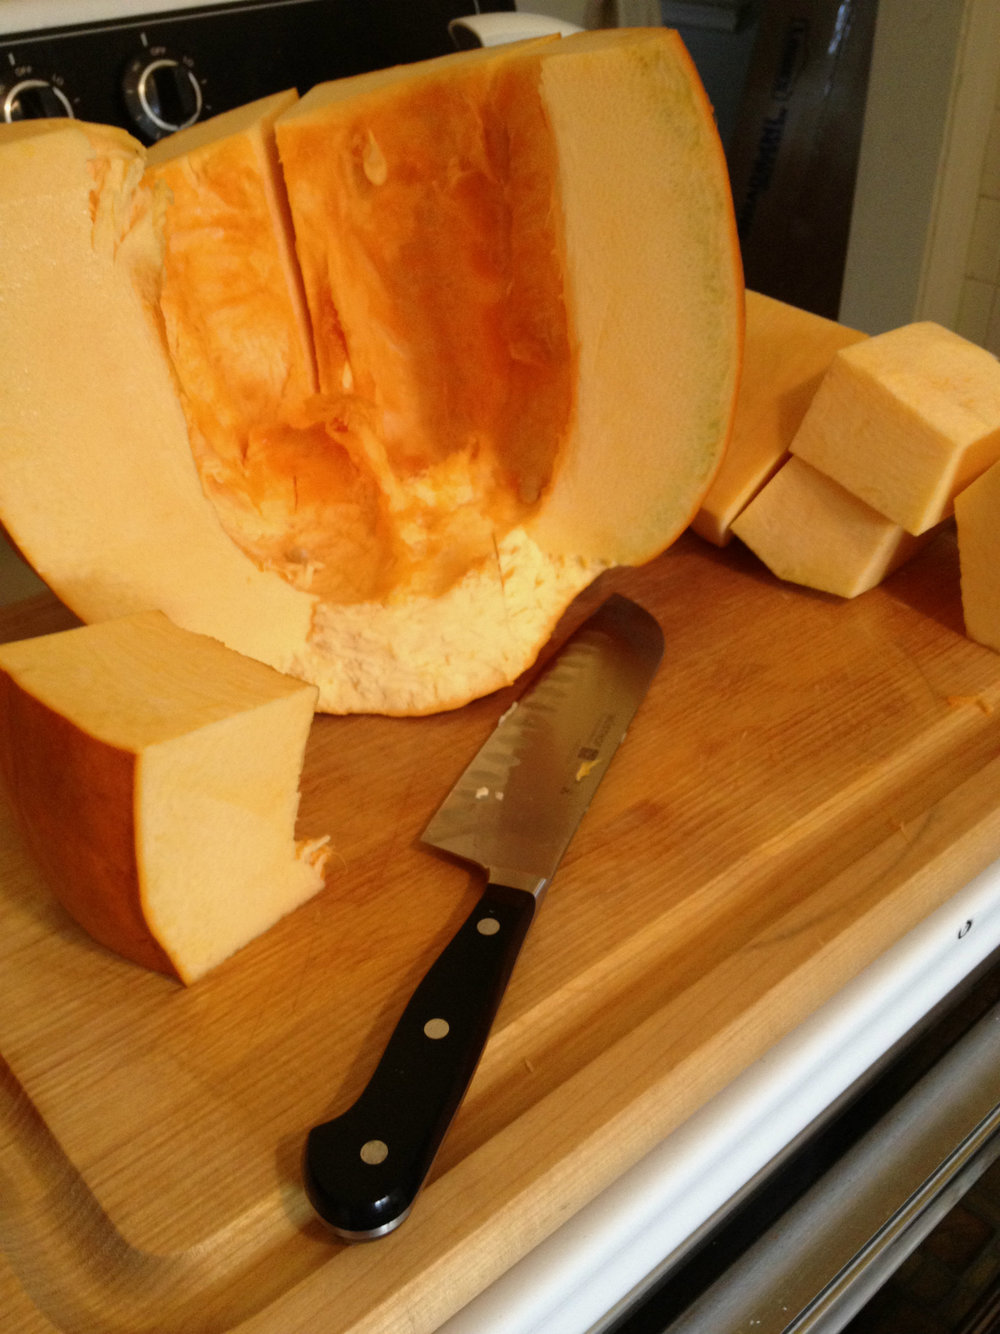 Pumpkin_sliced_cubes.jpg